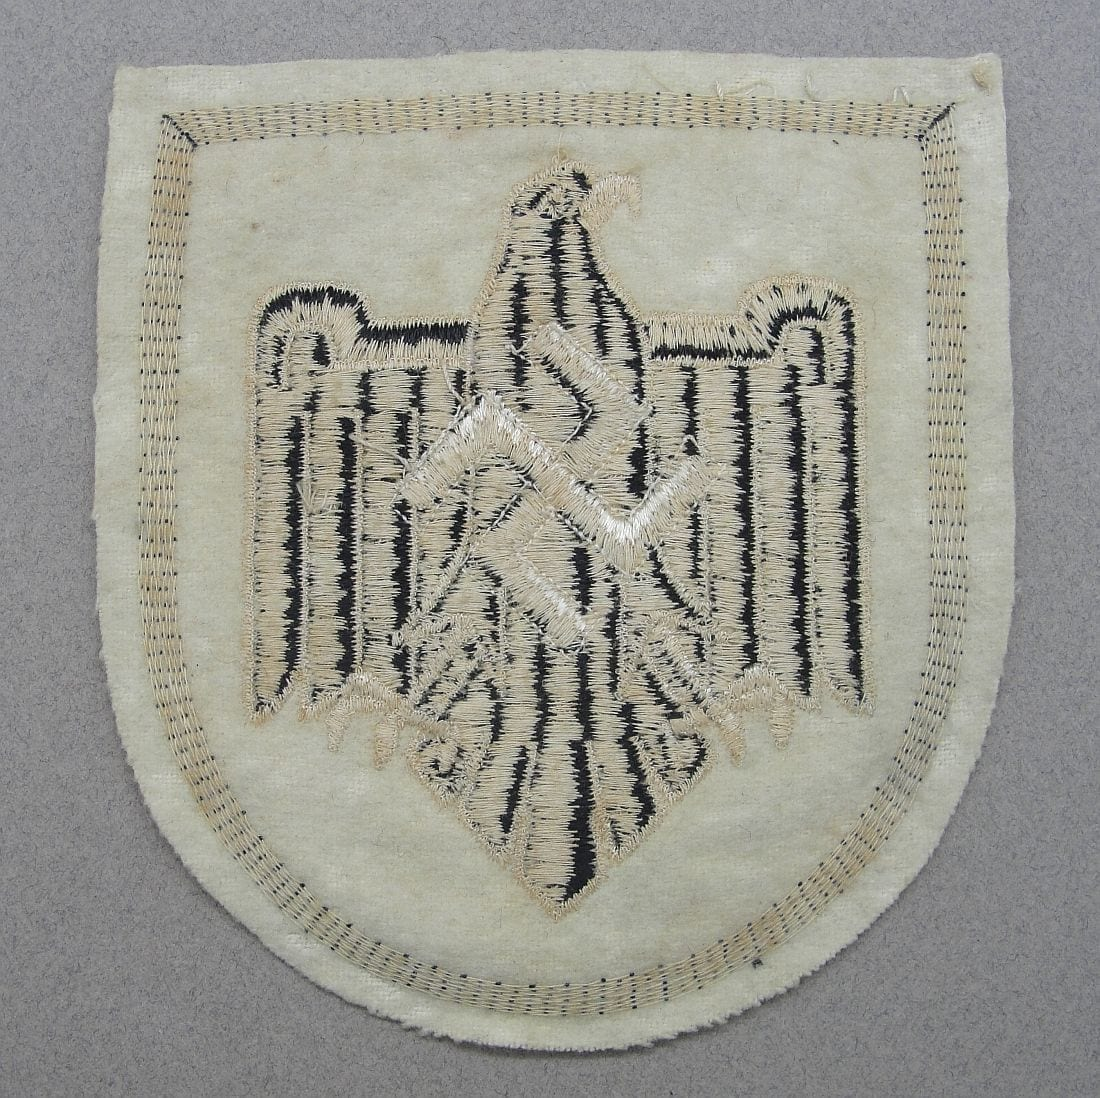 NSRL - DRL Insignia as Worn by 1936 Olympic Team